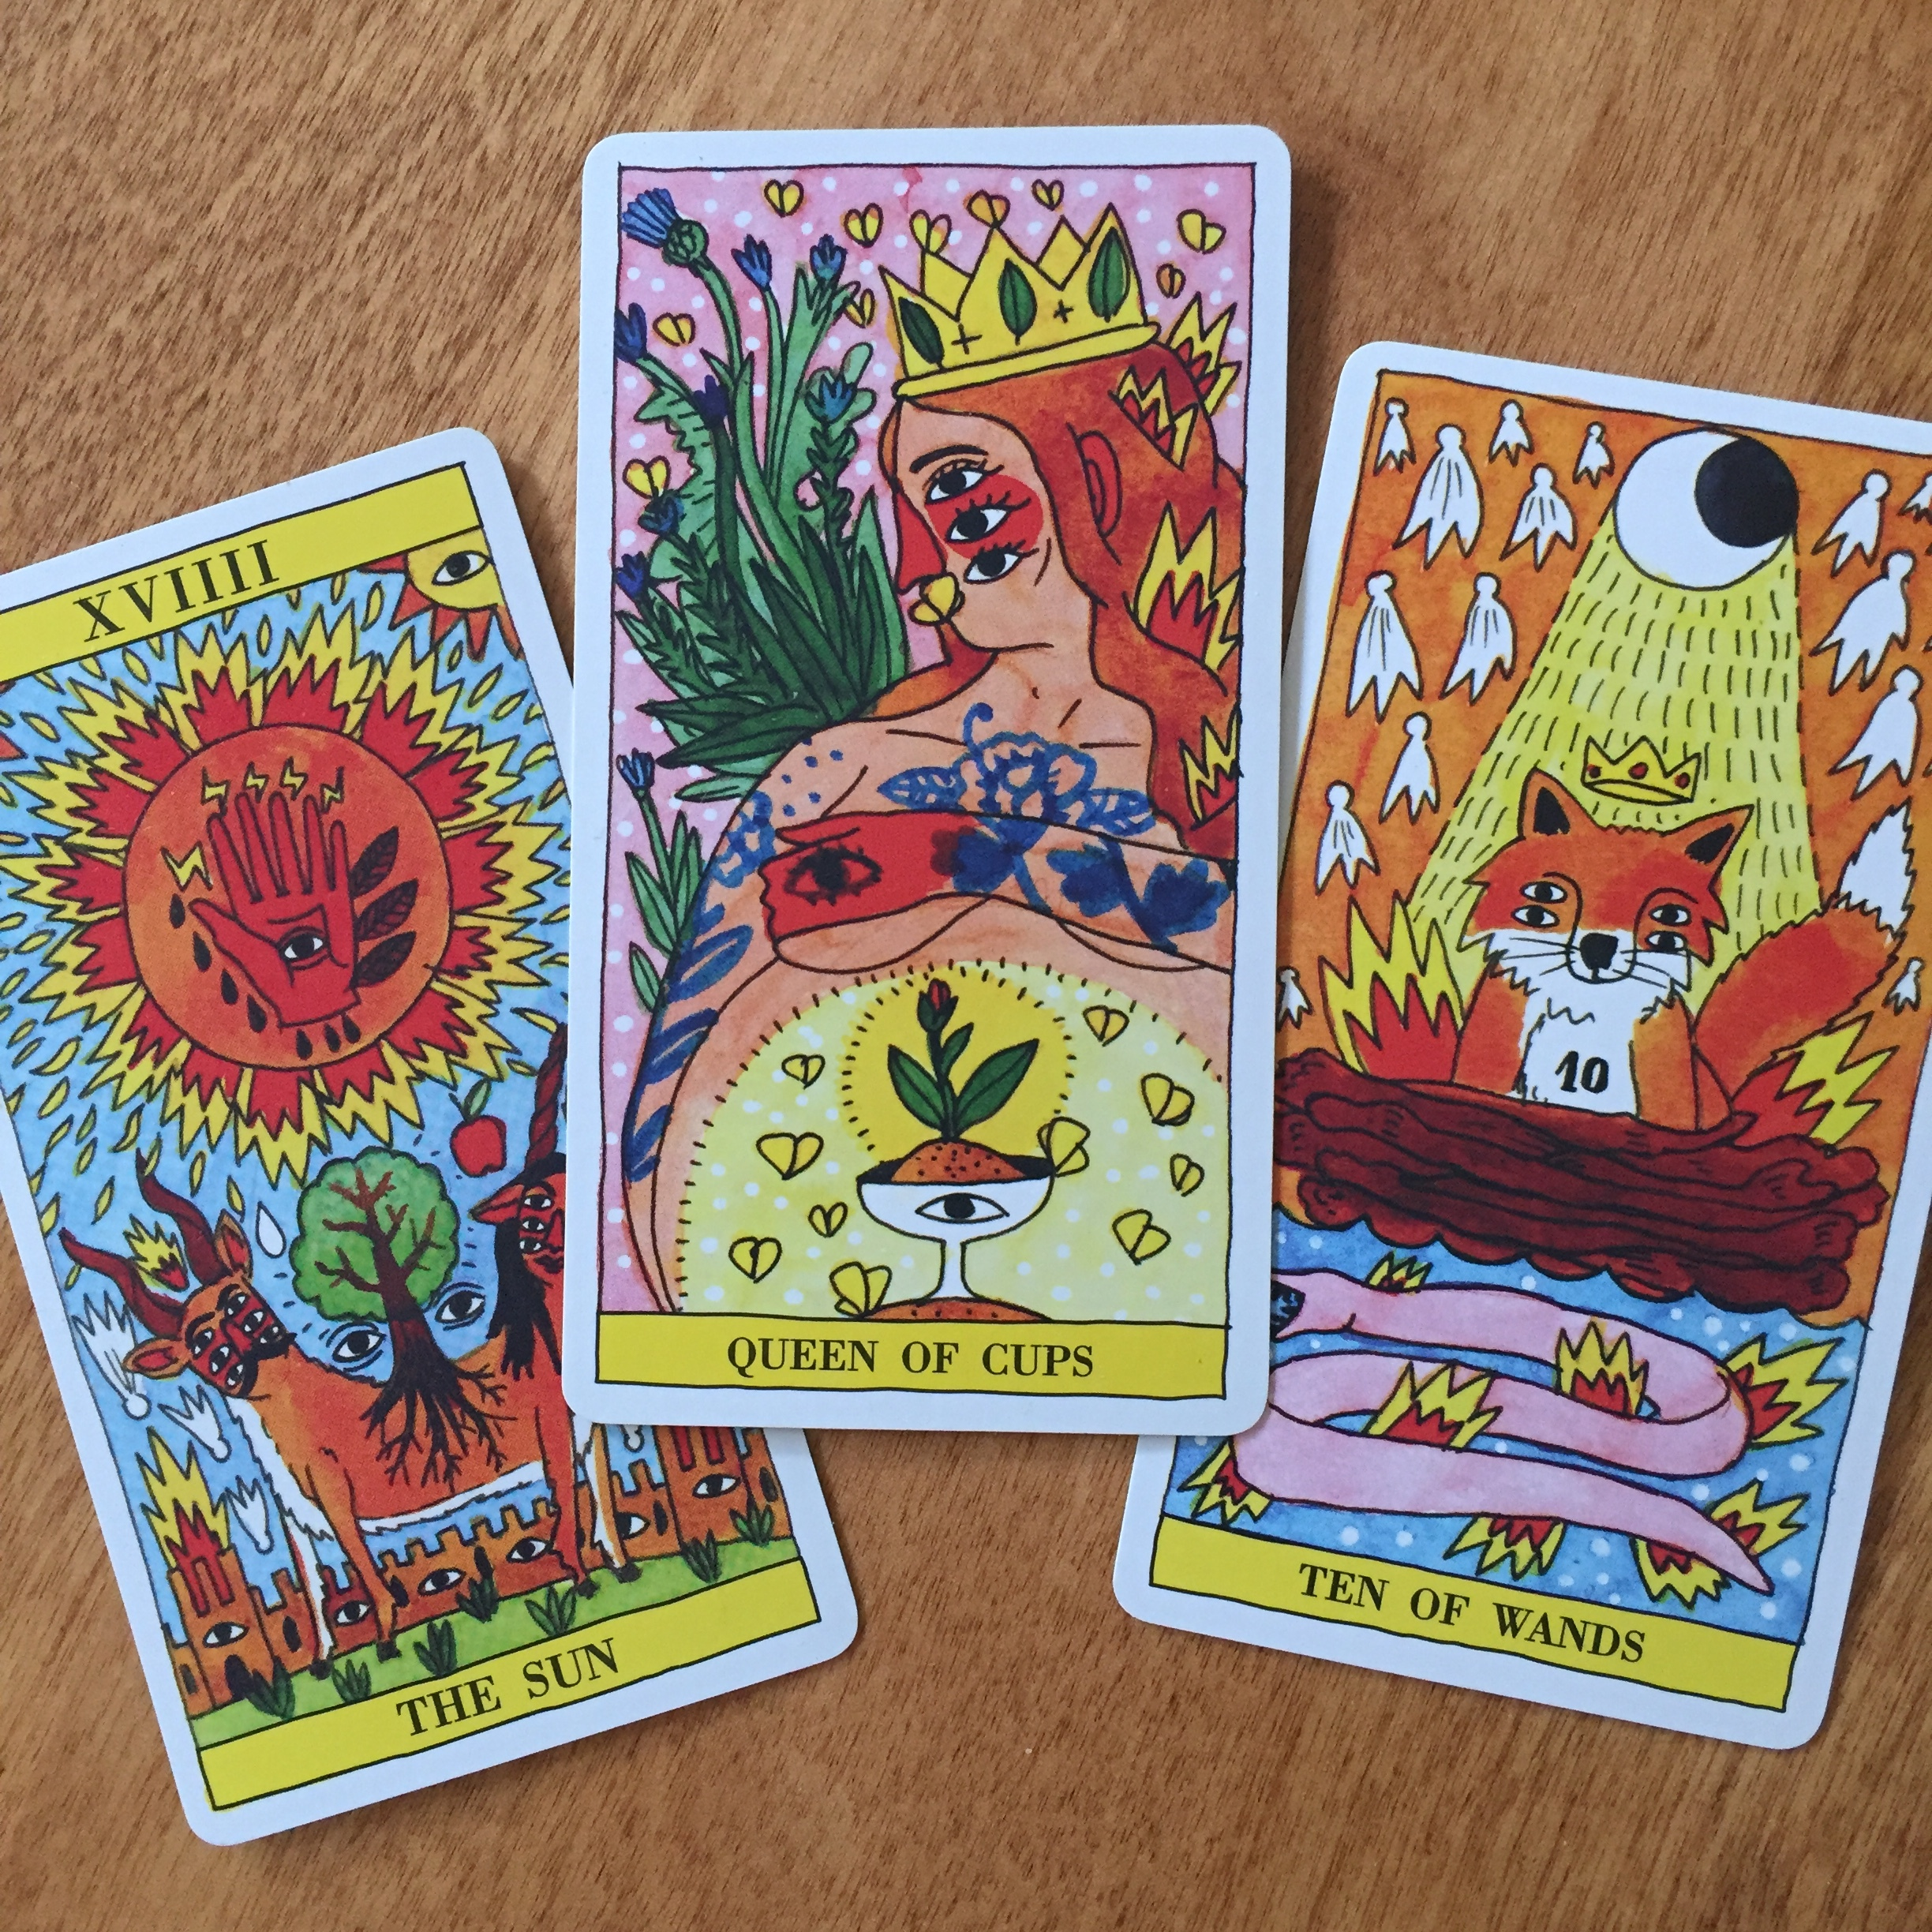 Ricardo Cavolo Tarot del Fuego Queen of Cups The Sun Ten of Wands